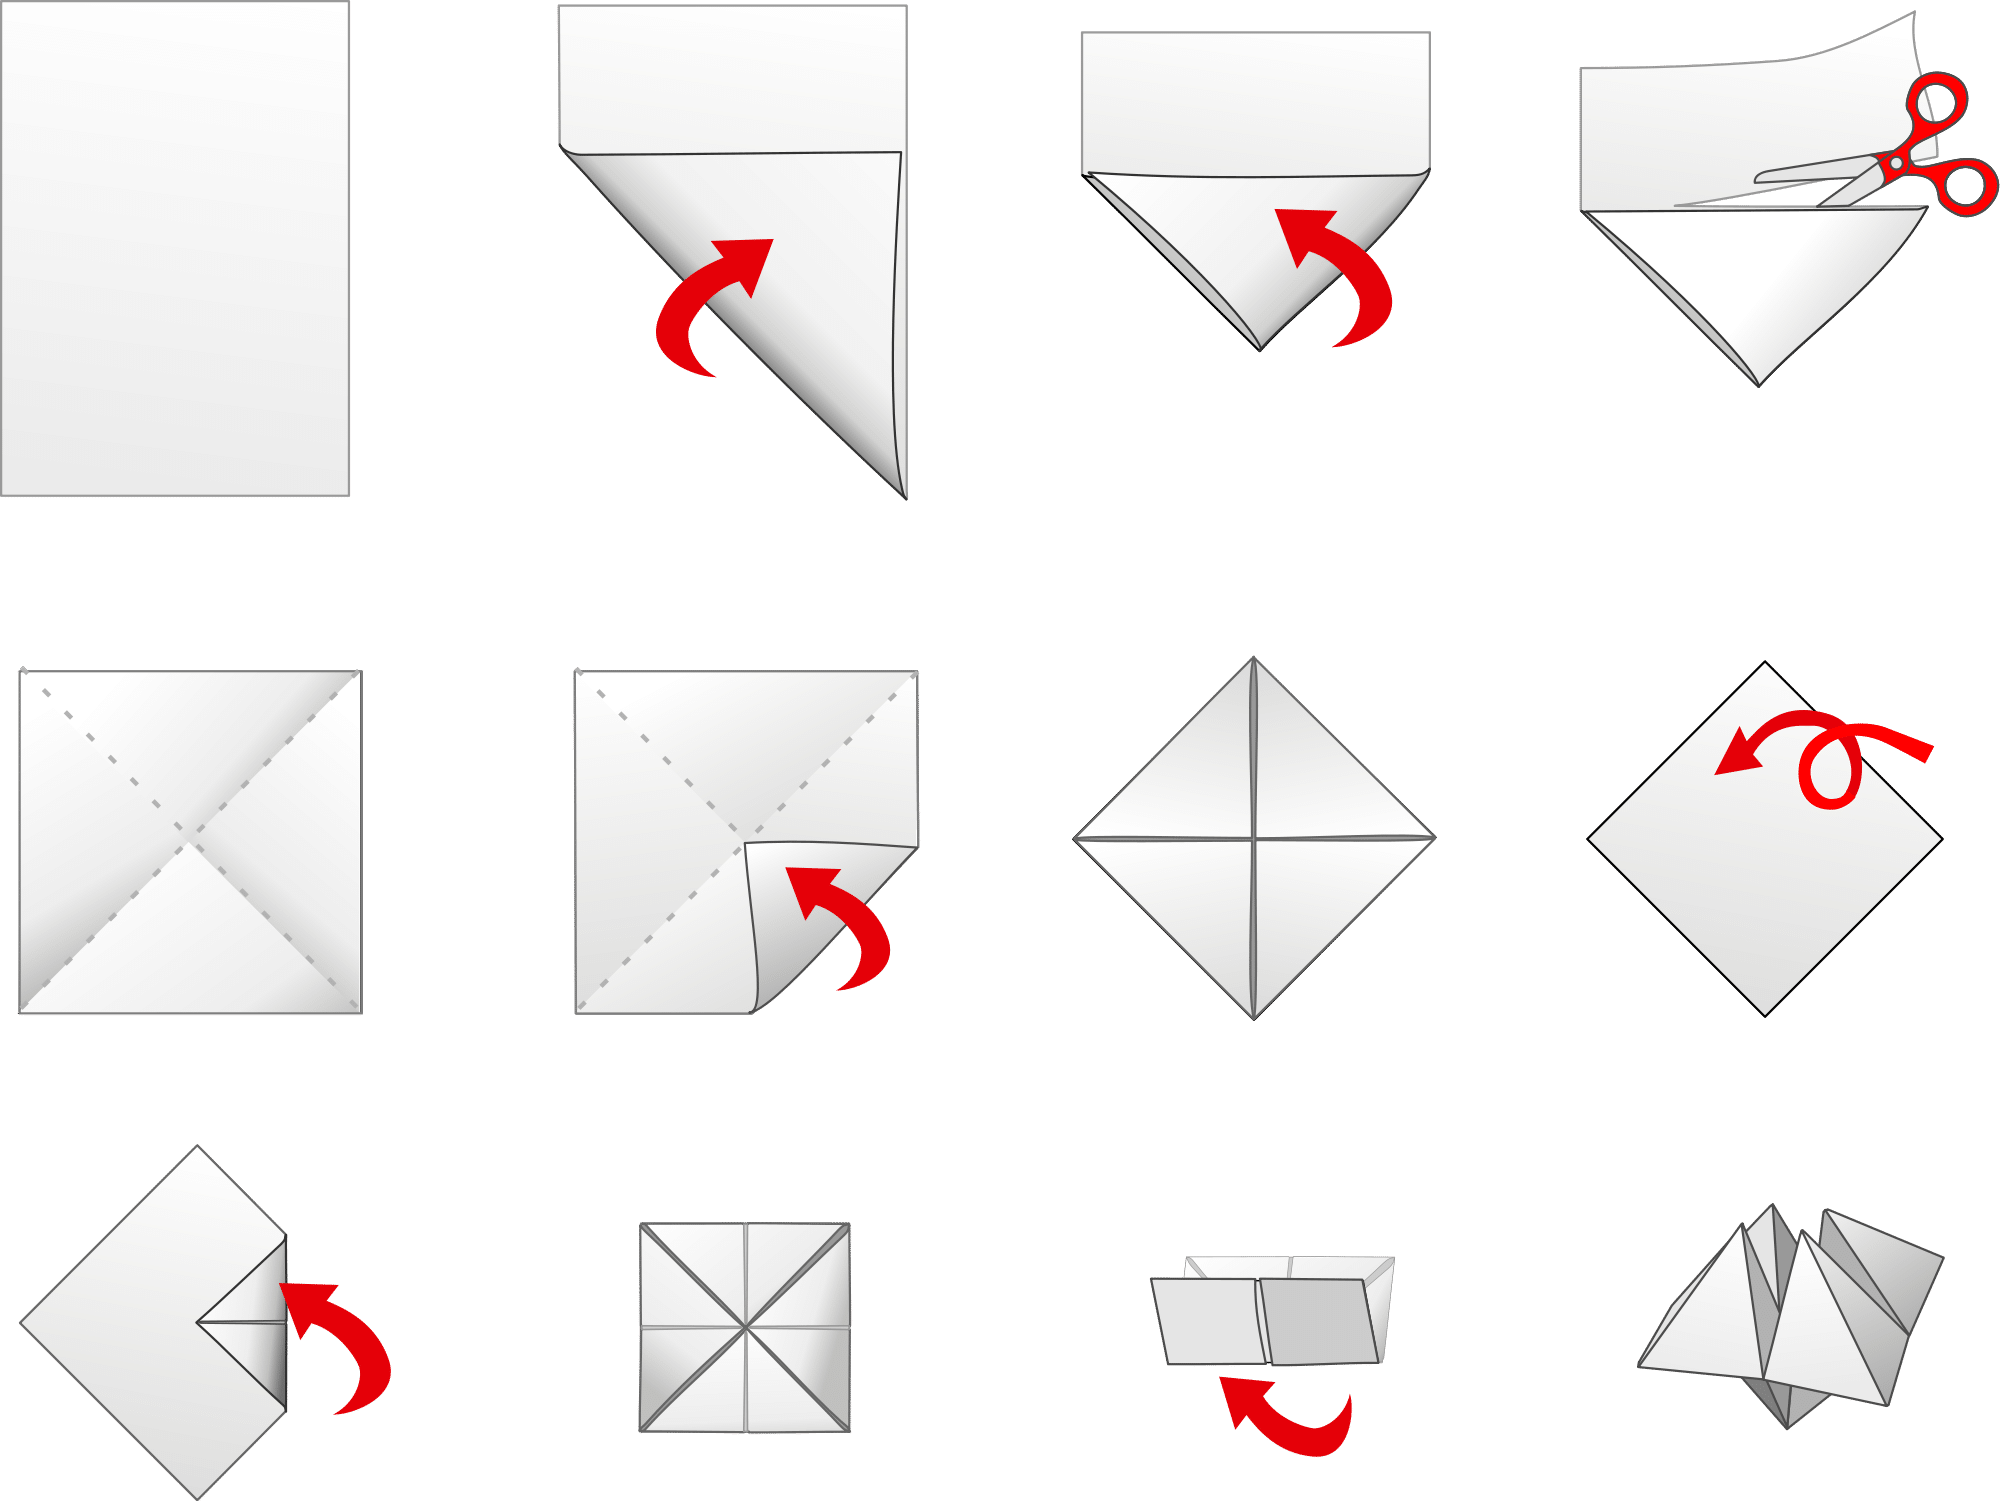 A step-by-step diagram for how to make a paper or origami fortune teller that is so easy kids can follow it.